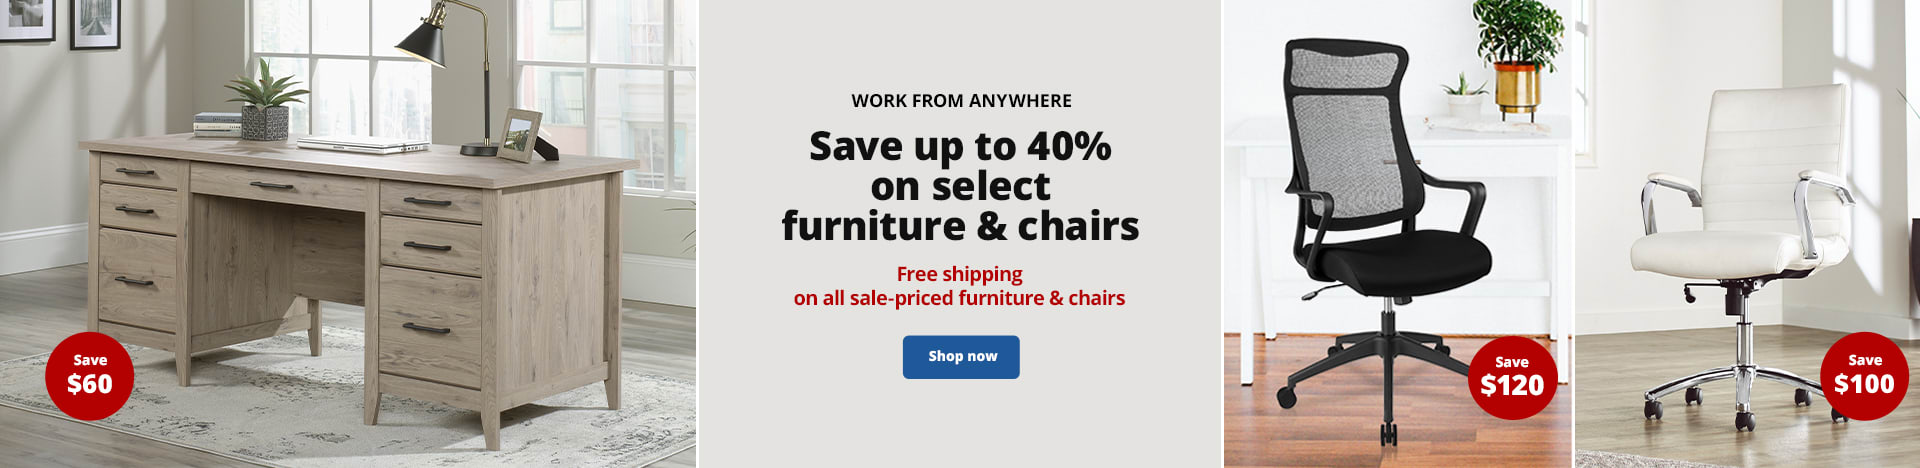 Work from anywhere. Save up to 40% on select furniture & chairs. Free shipping on all sale-priced furniture & chairs